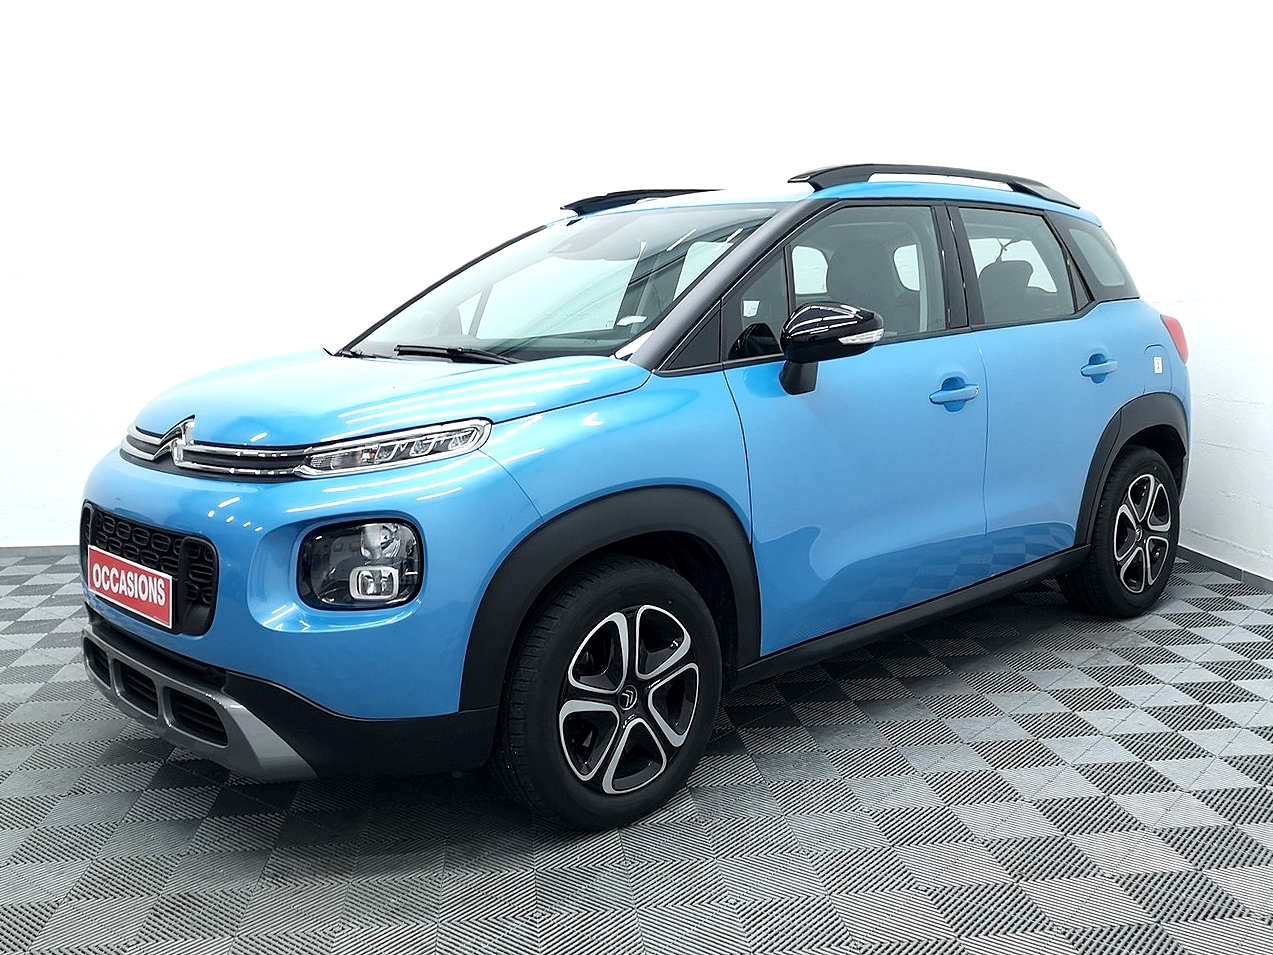 CITROEN C3 AIRCROSS PureTech 110 S&S EAT6 Feel d'occasion